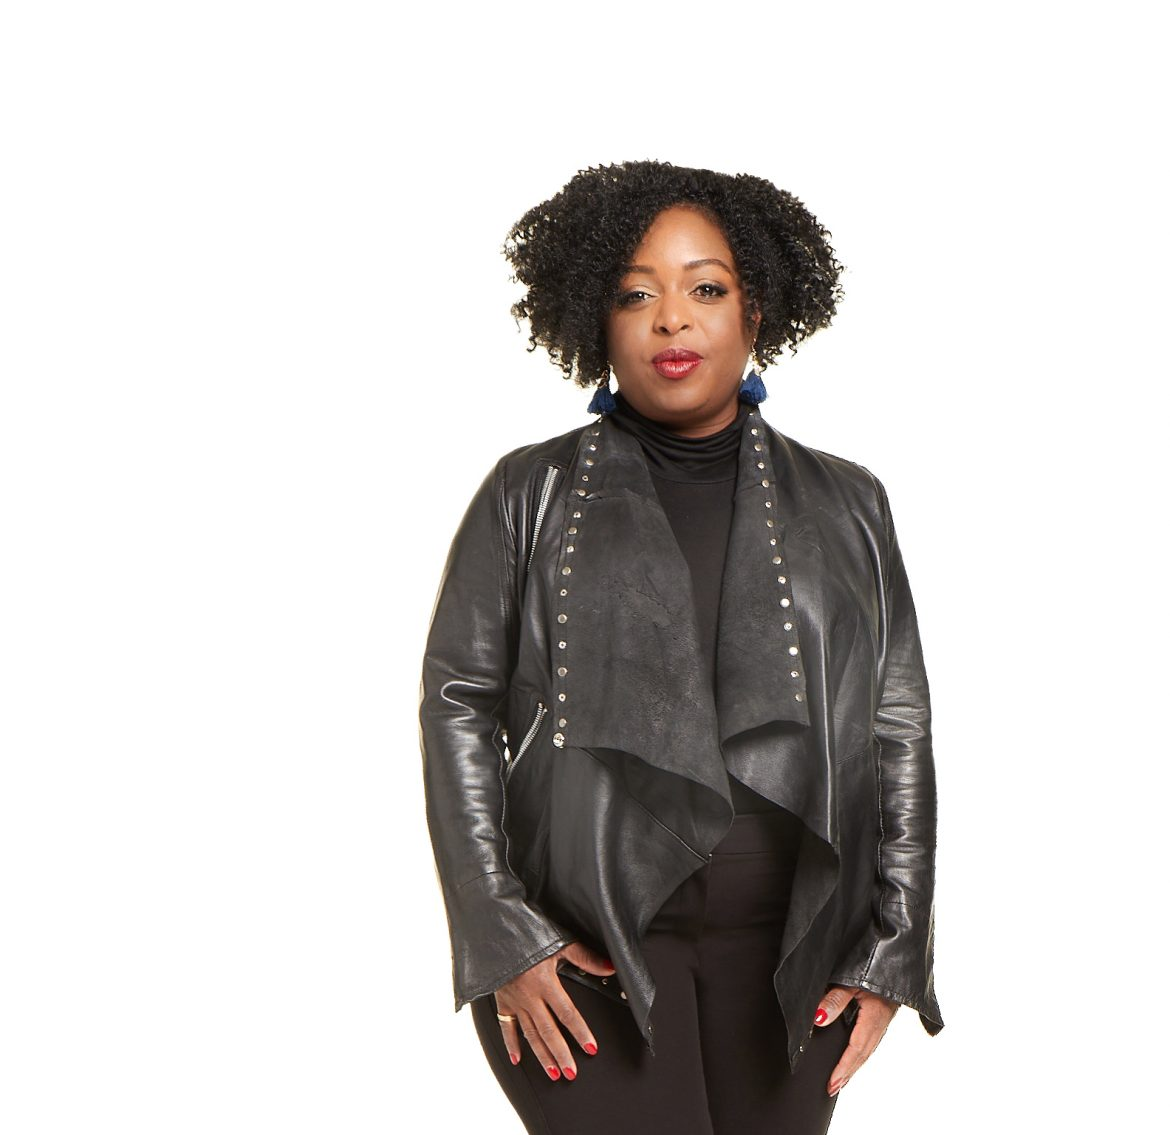 Kimberly Bryant Sends Students to Devcon IV